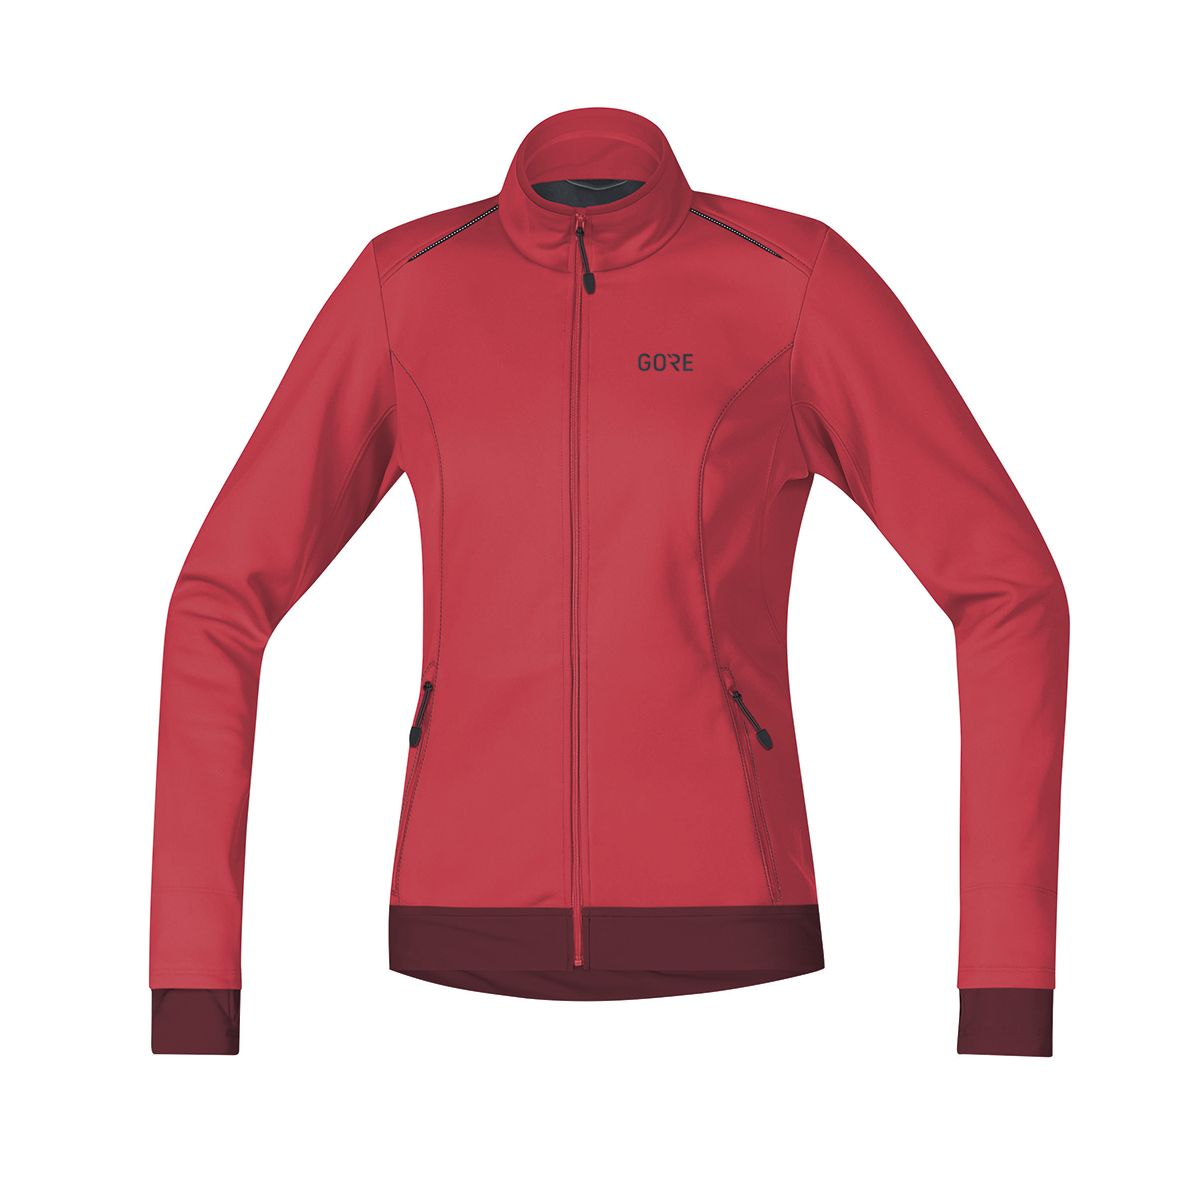 C3 WOMEN GORE WINDSTOPPER THERMO JACKET Damen Thermojacke